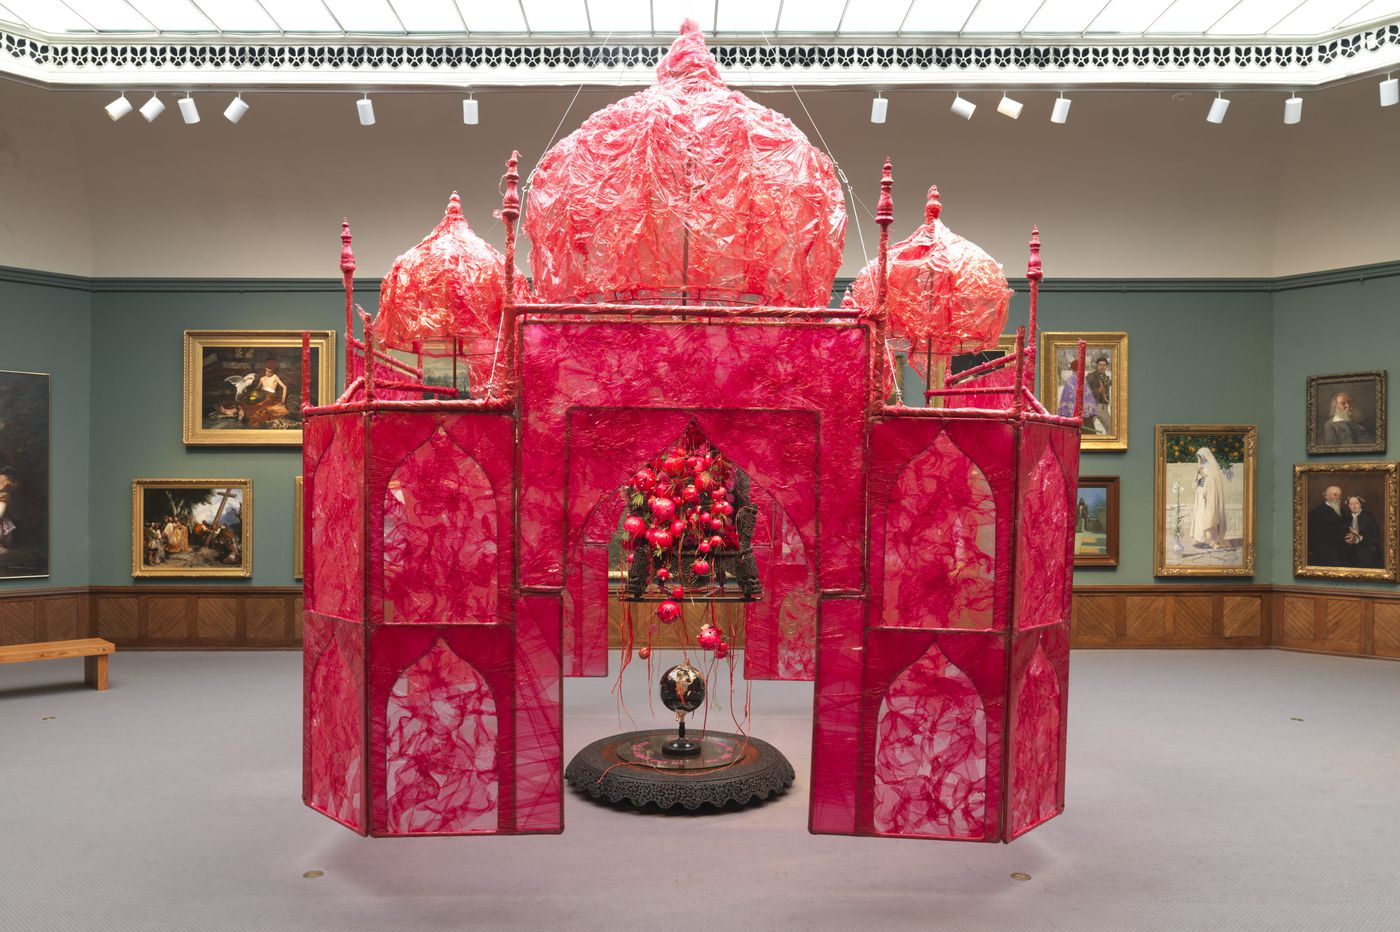 Rina Banerjee at PAFA: Exhilarating American art from an immigrant with a Fox Chase connection